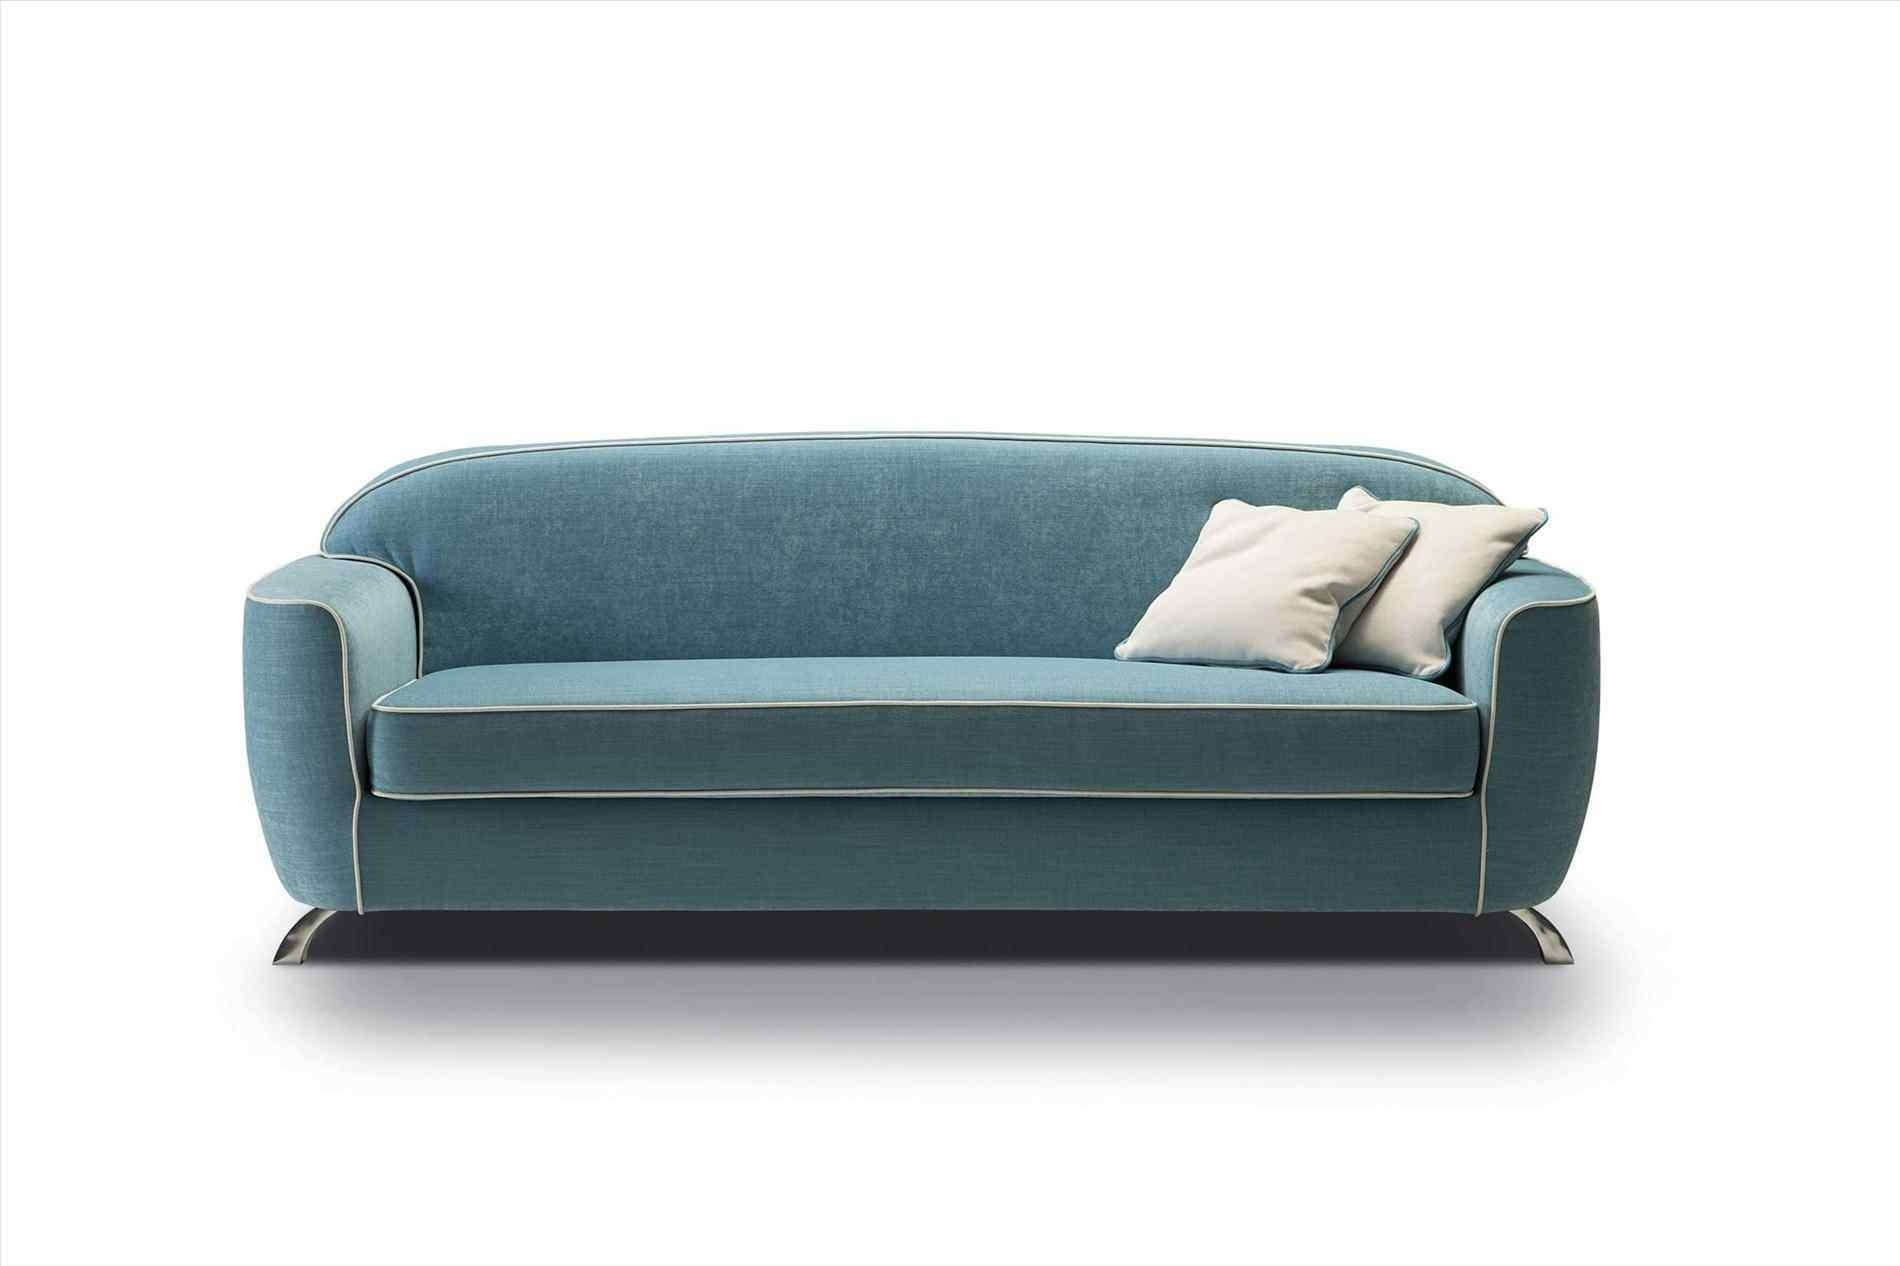 Sofa : Washable Covers Contemporary Fabric Removable Cover Couch Intended For Sofas With Washable Covers (View 8 of 10)